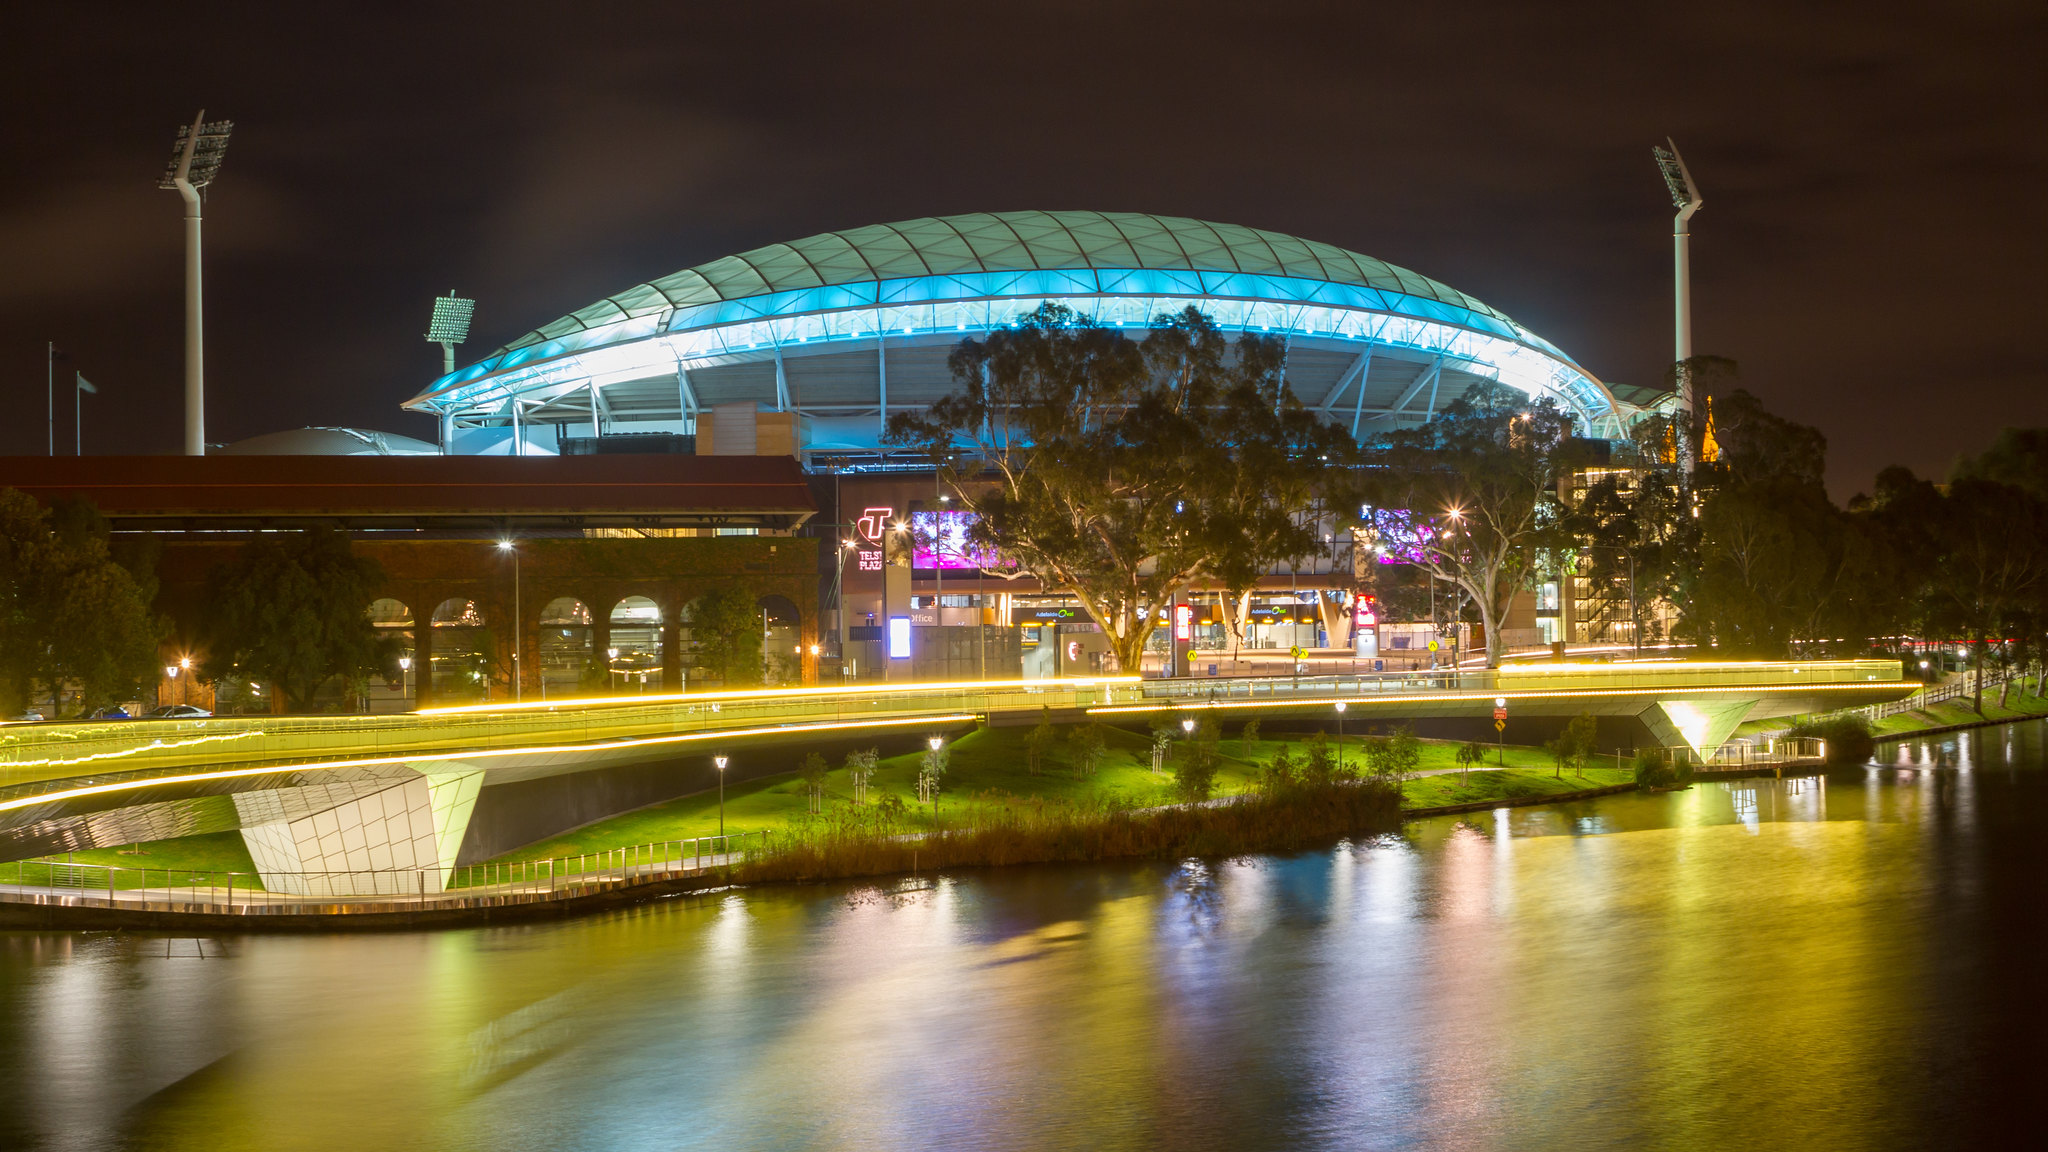 9 Best Things To Do in Adelaide, Australia [with Suggested Tours]